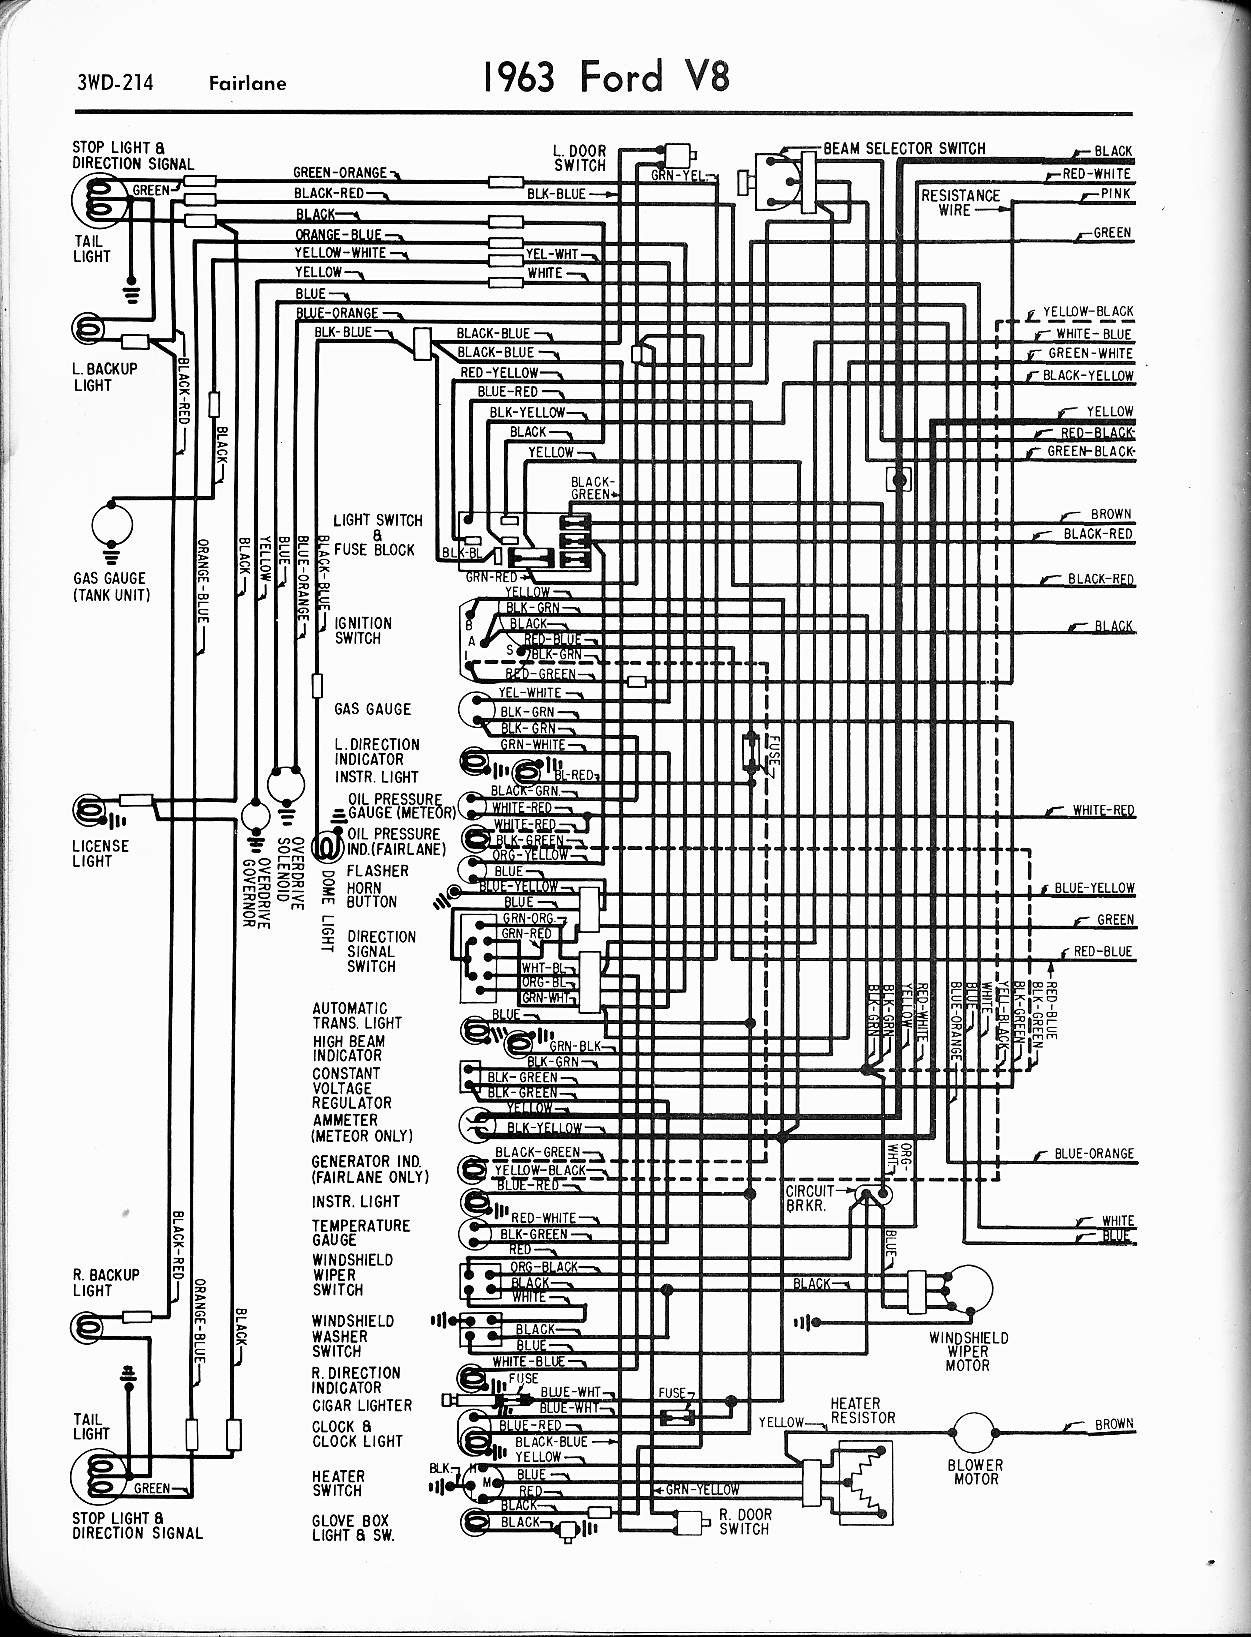 1962 Ford Galaxie Wiring Diagram Schematic List Of Hornblasters 1957 Fairlane Just Data Rh Ag Skiphire Co Uk